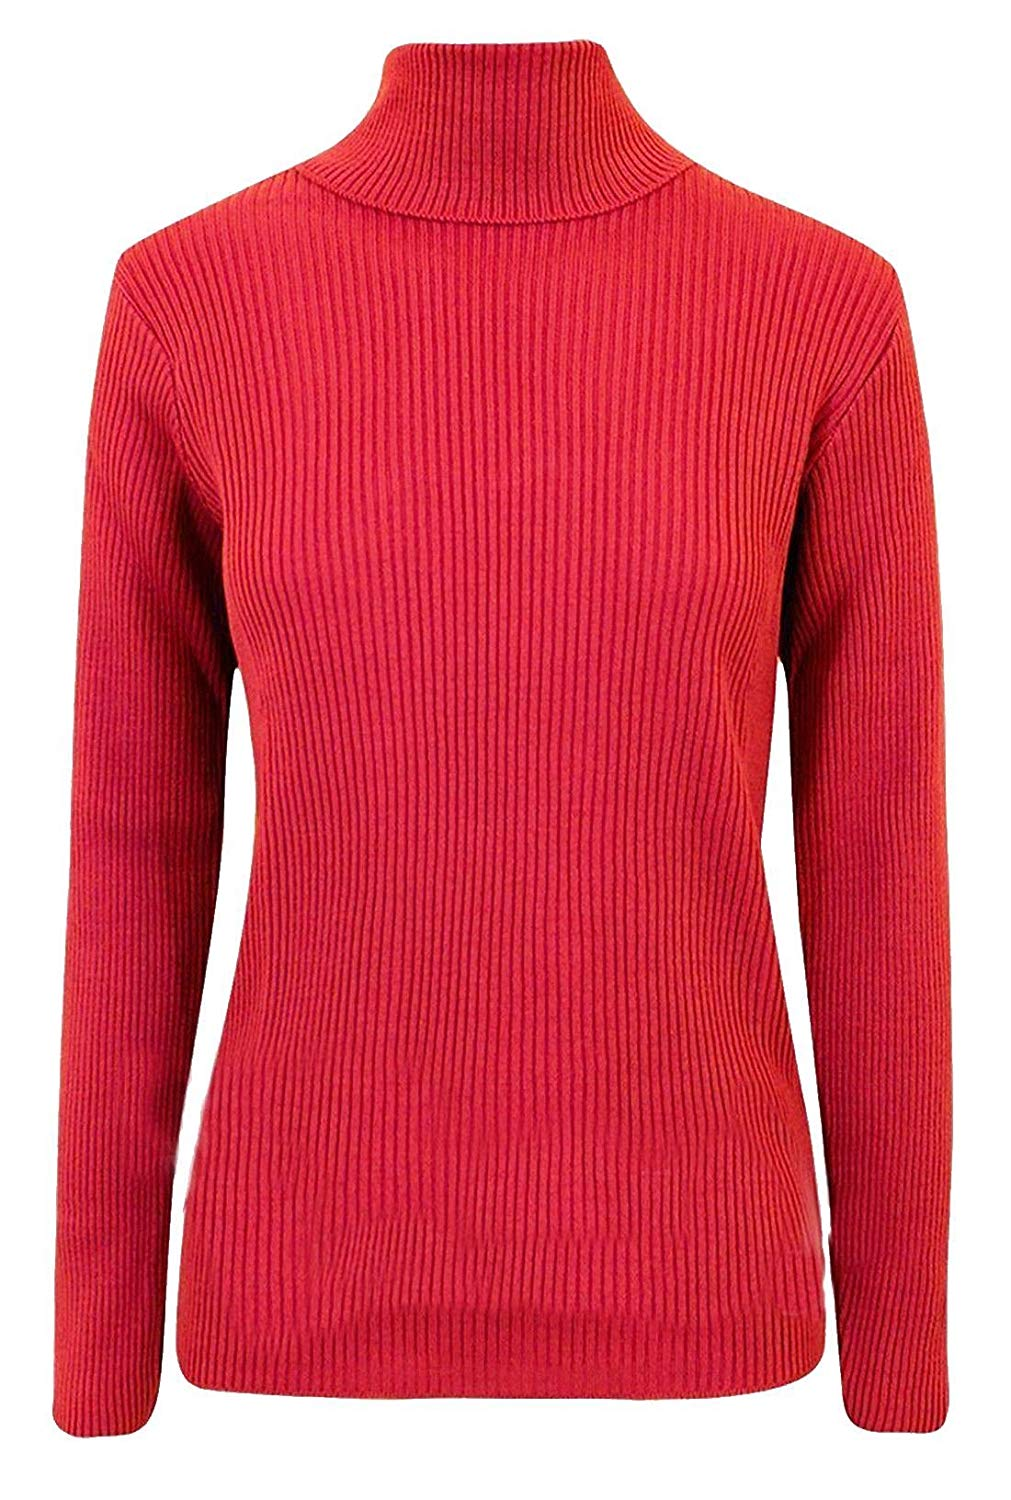 3b4d438992aa08 Get Quotations · FASHION FAIRIES Womens Polo Turtle Neck Ribbed Jumper Top  Ladies Full Sleeve Stretch Jumper Top